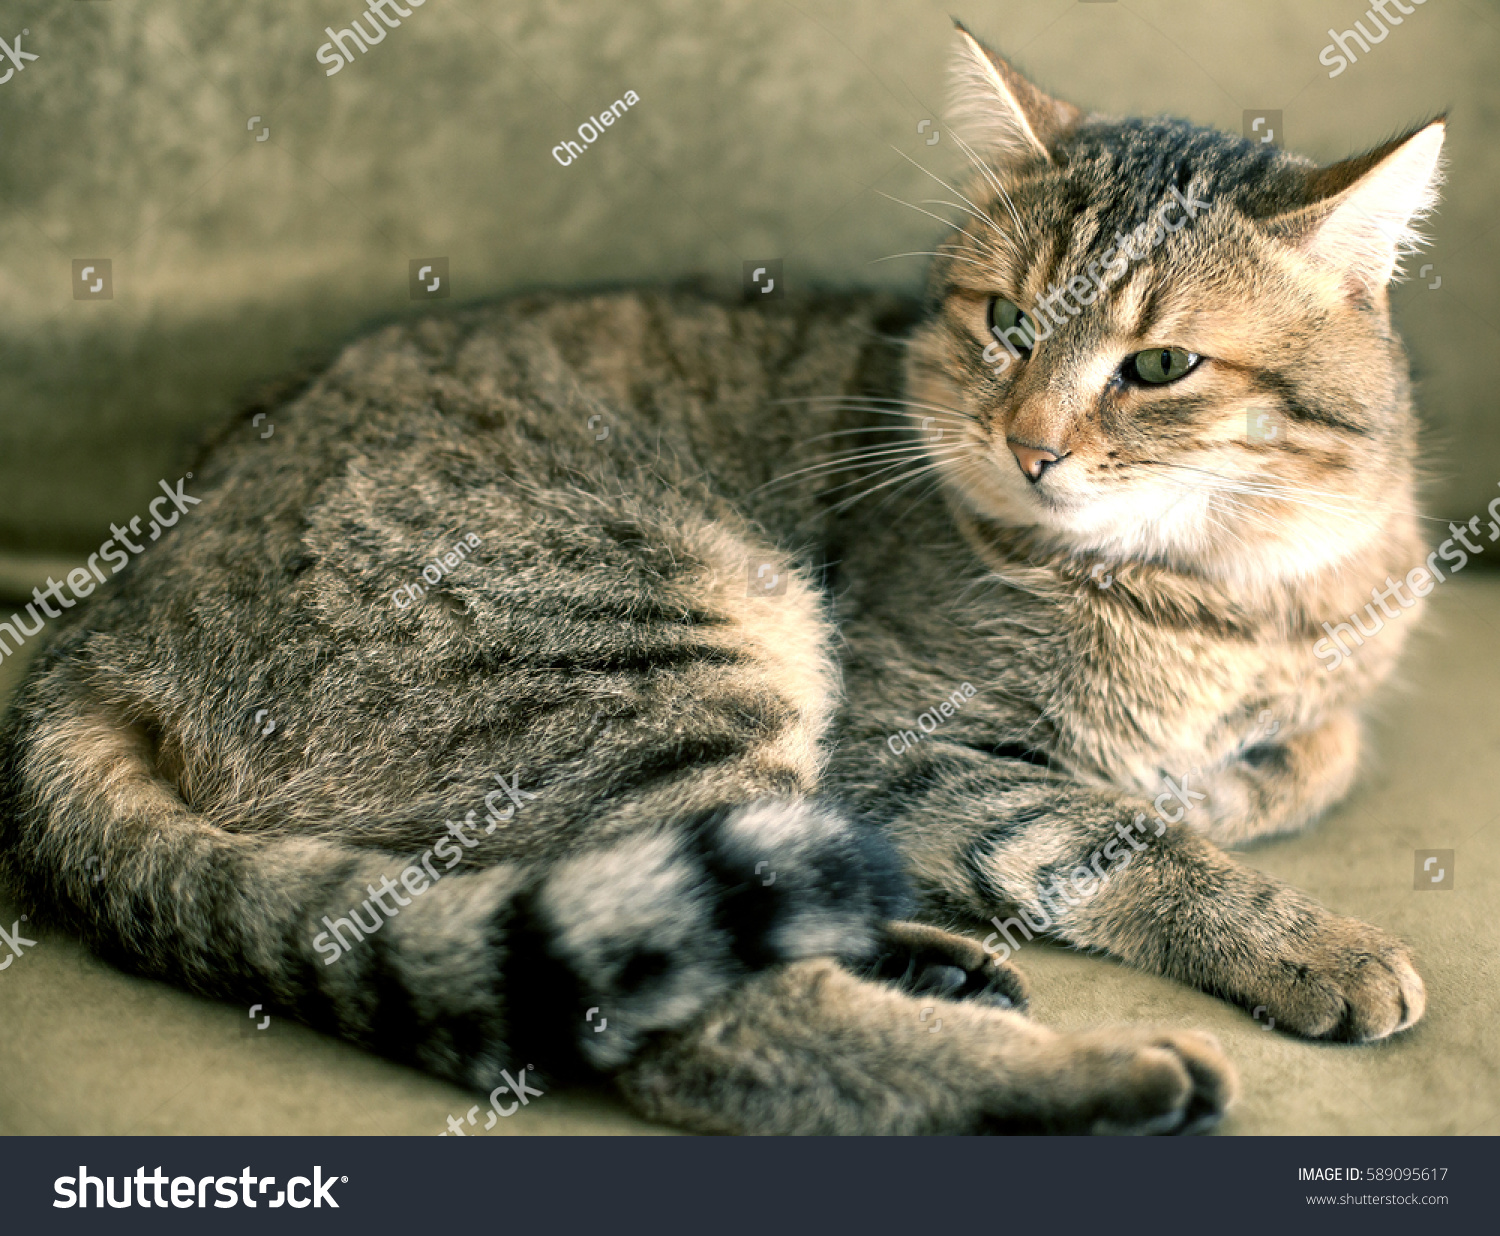 33440d6460 Cat Home Striped Spotted Tabby Stock Photo (Edit Now) 589095617 ...